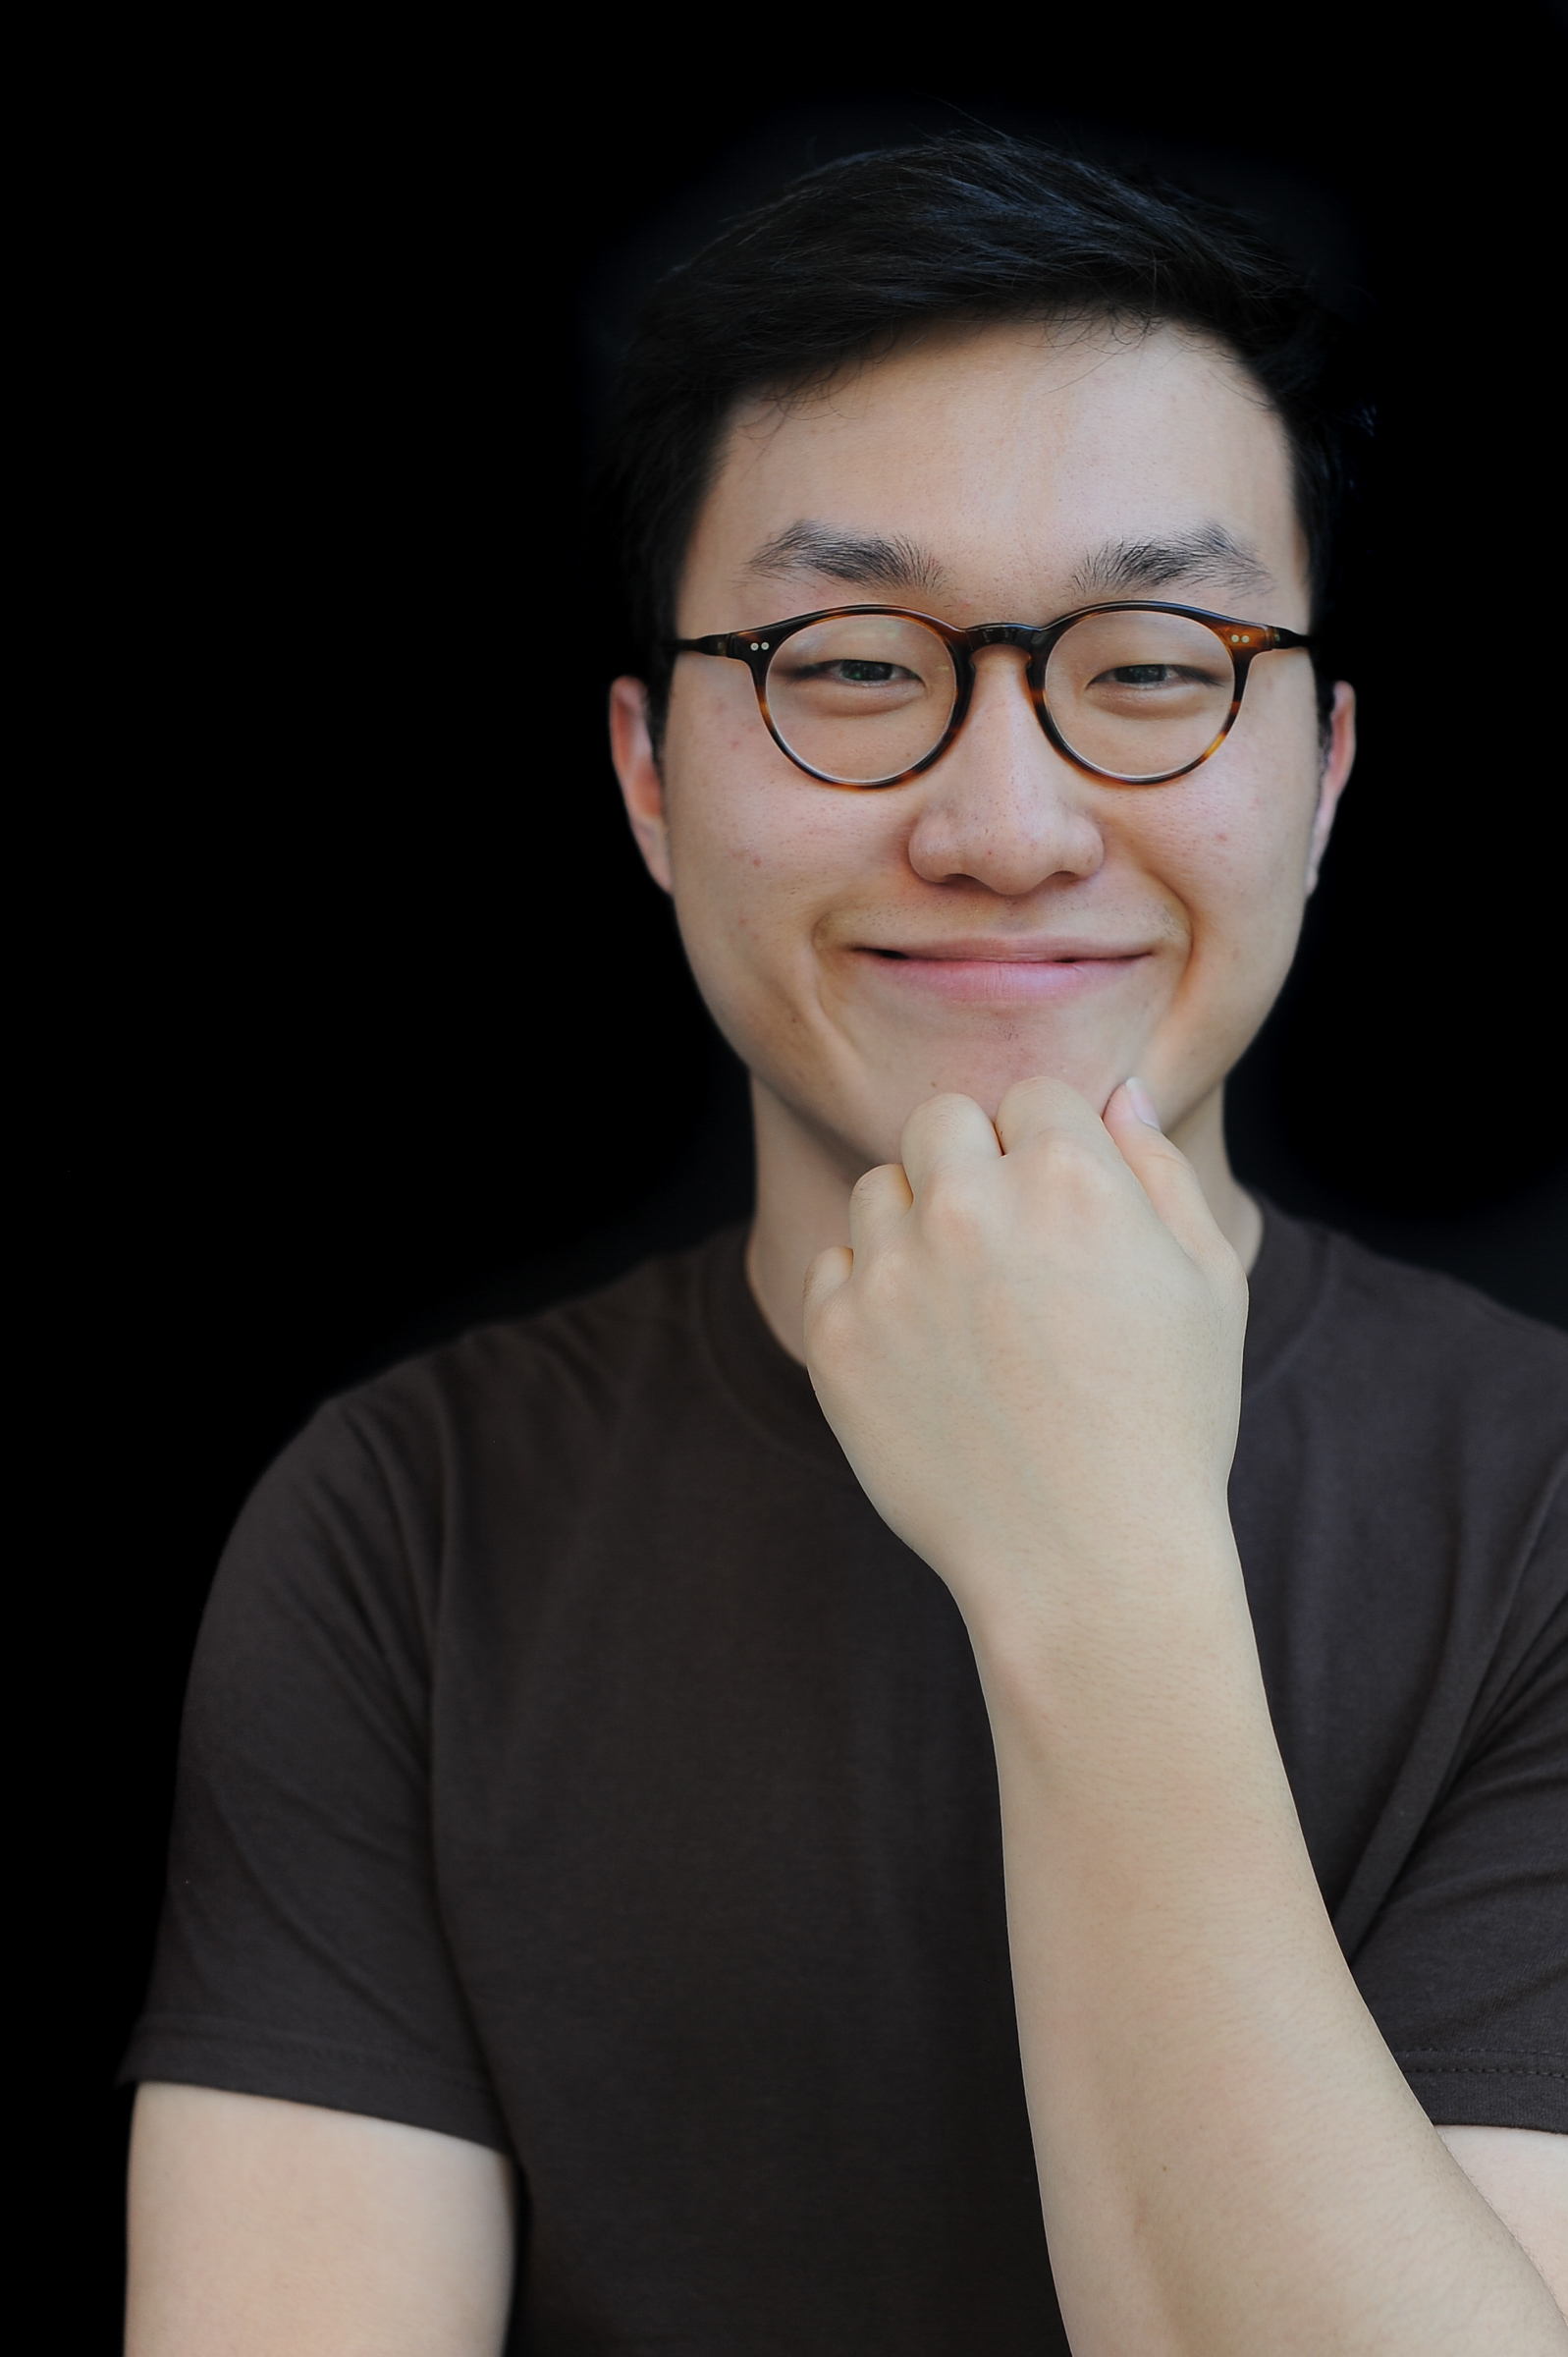 Name: Eric Cho